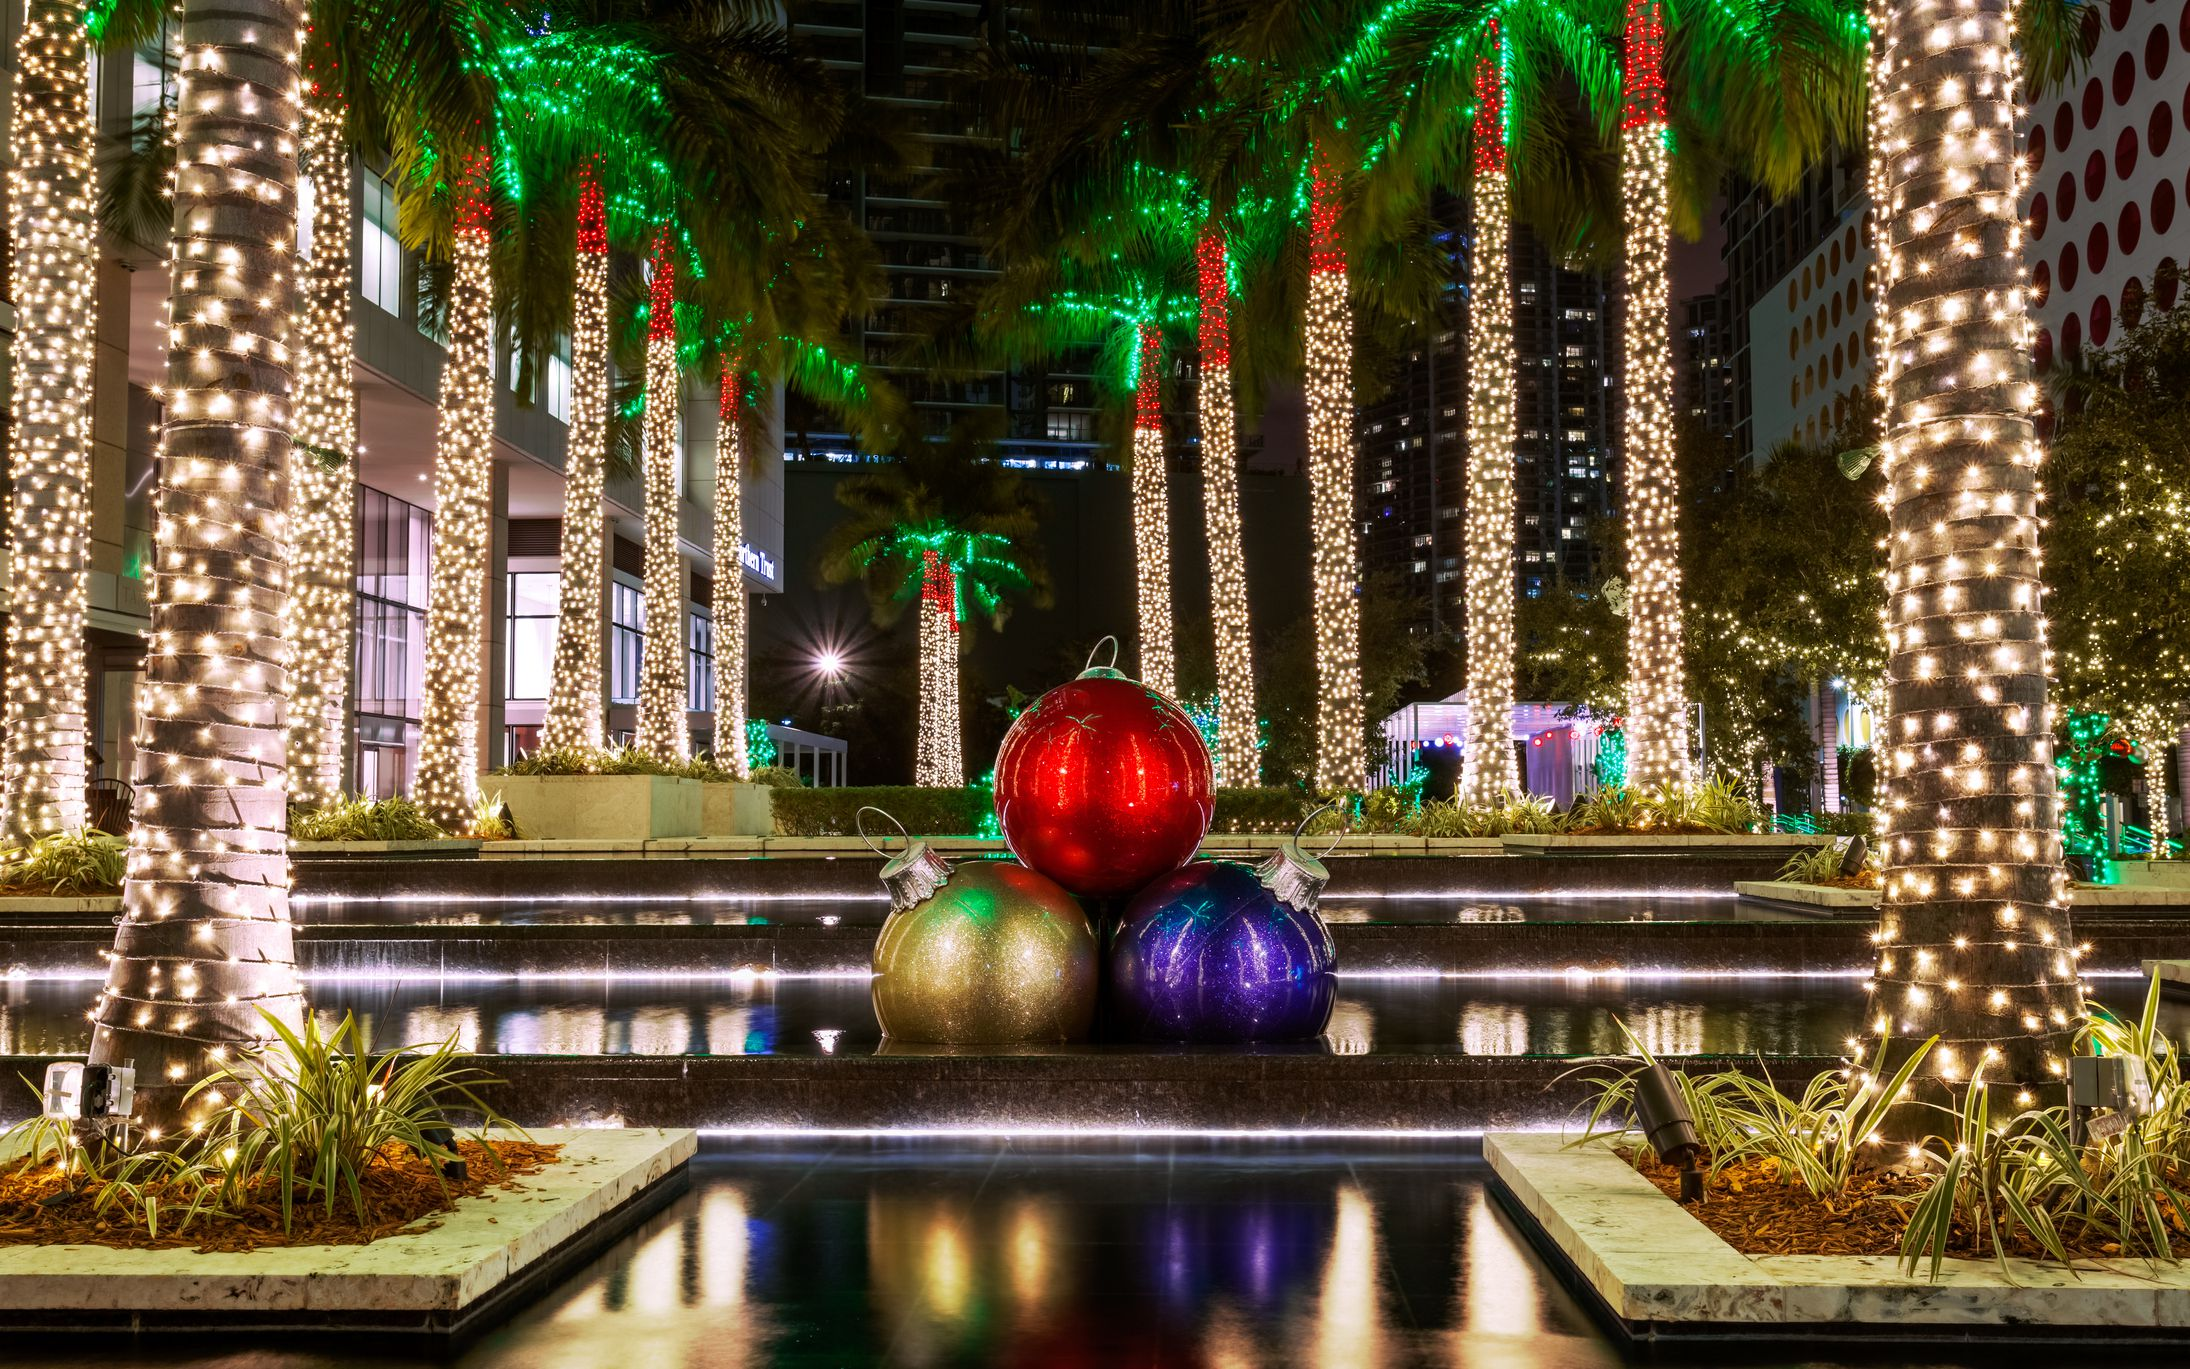 Christmas In Florida Images.December In Florida Weather And Event Guide